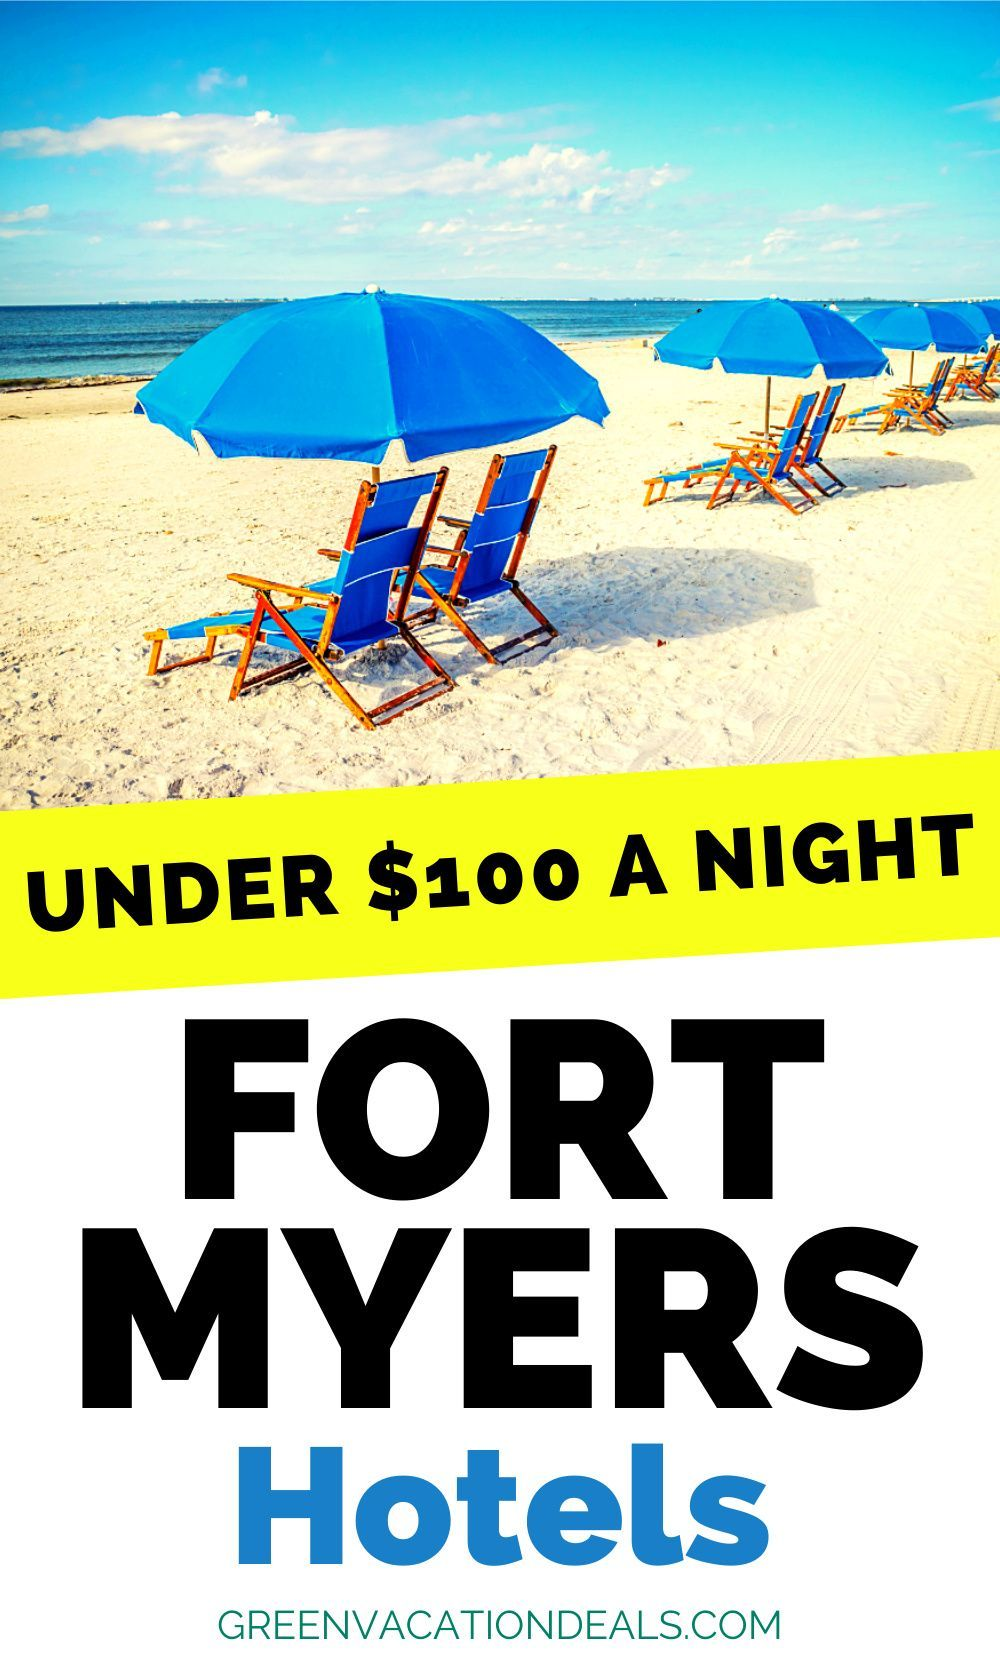 Discounted, cheap rates for Fort Myers, Florida hotels: Marriott, Holiday Inn, Shipwreck, Best Western, Hilton, Embassy Suites, Dolphin Key Resort, Hyatt... Great travel hacks for a Fort Myers beach vacation. #FortMyers #Florida #HotelDeals #TravelDeals #TravelSale #HotelSale #travelhacks #kayaking #Paddleboarding #dolphincruise #LoveFL #parasailing #budgettravel #cheaptravel #travelcheap